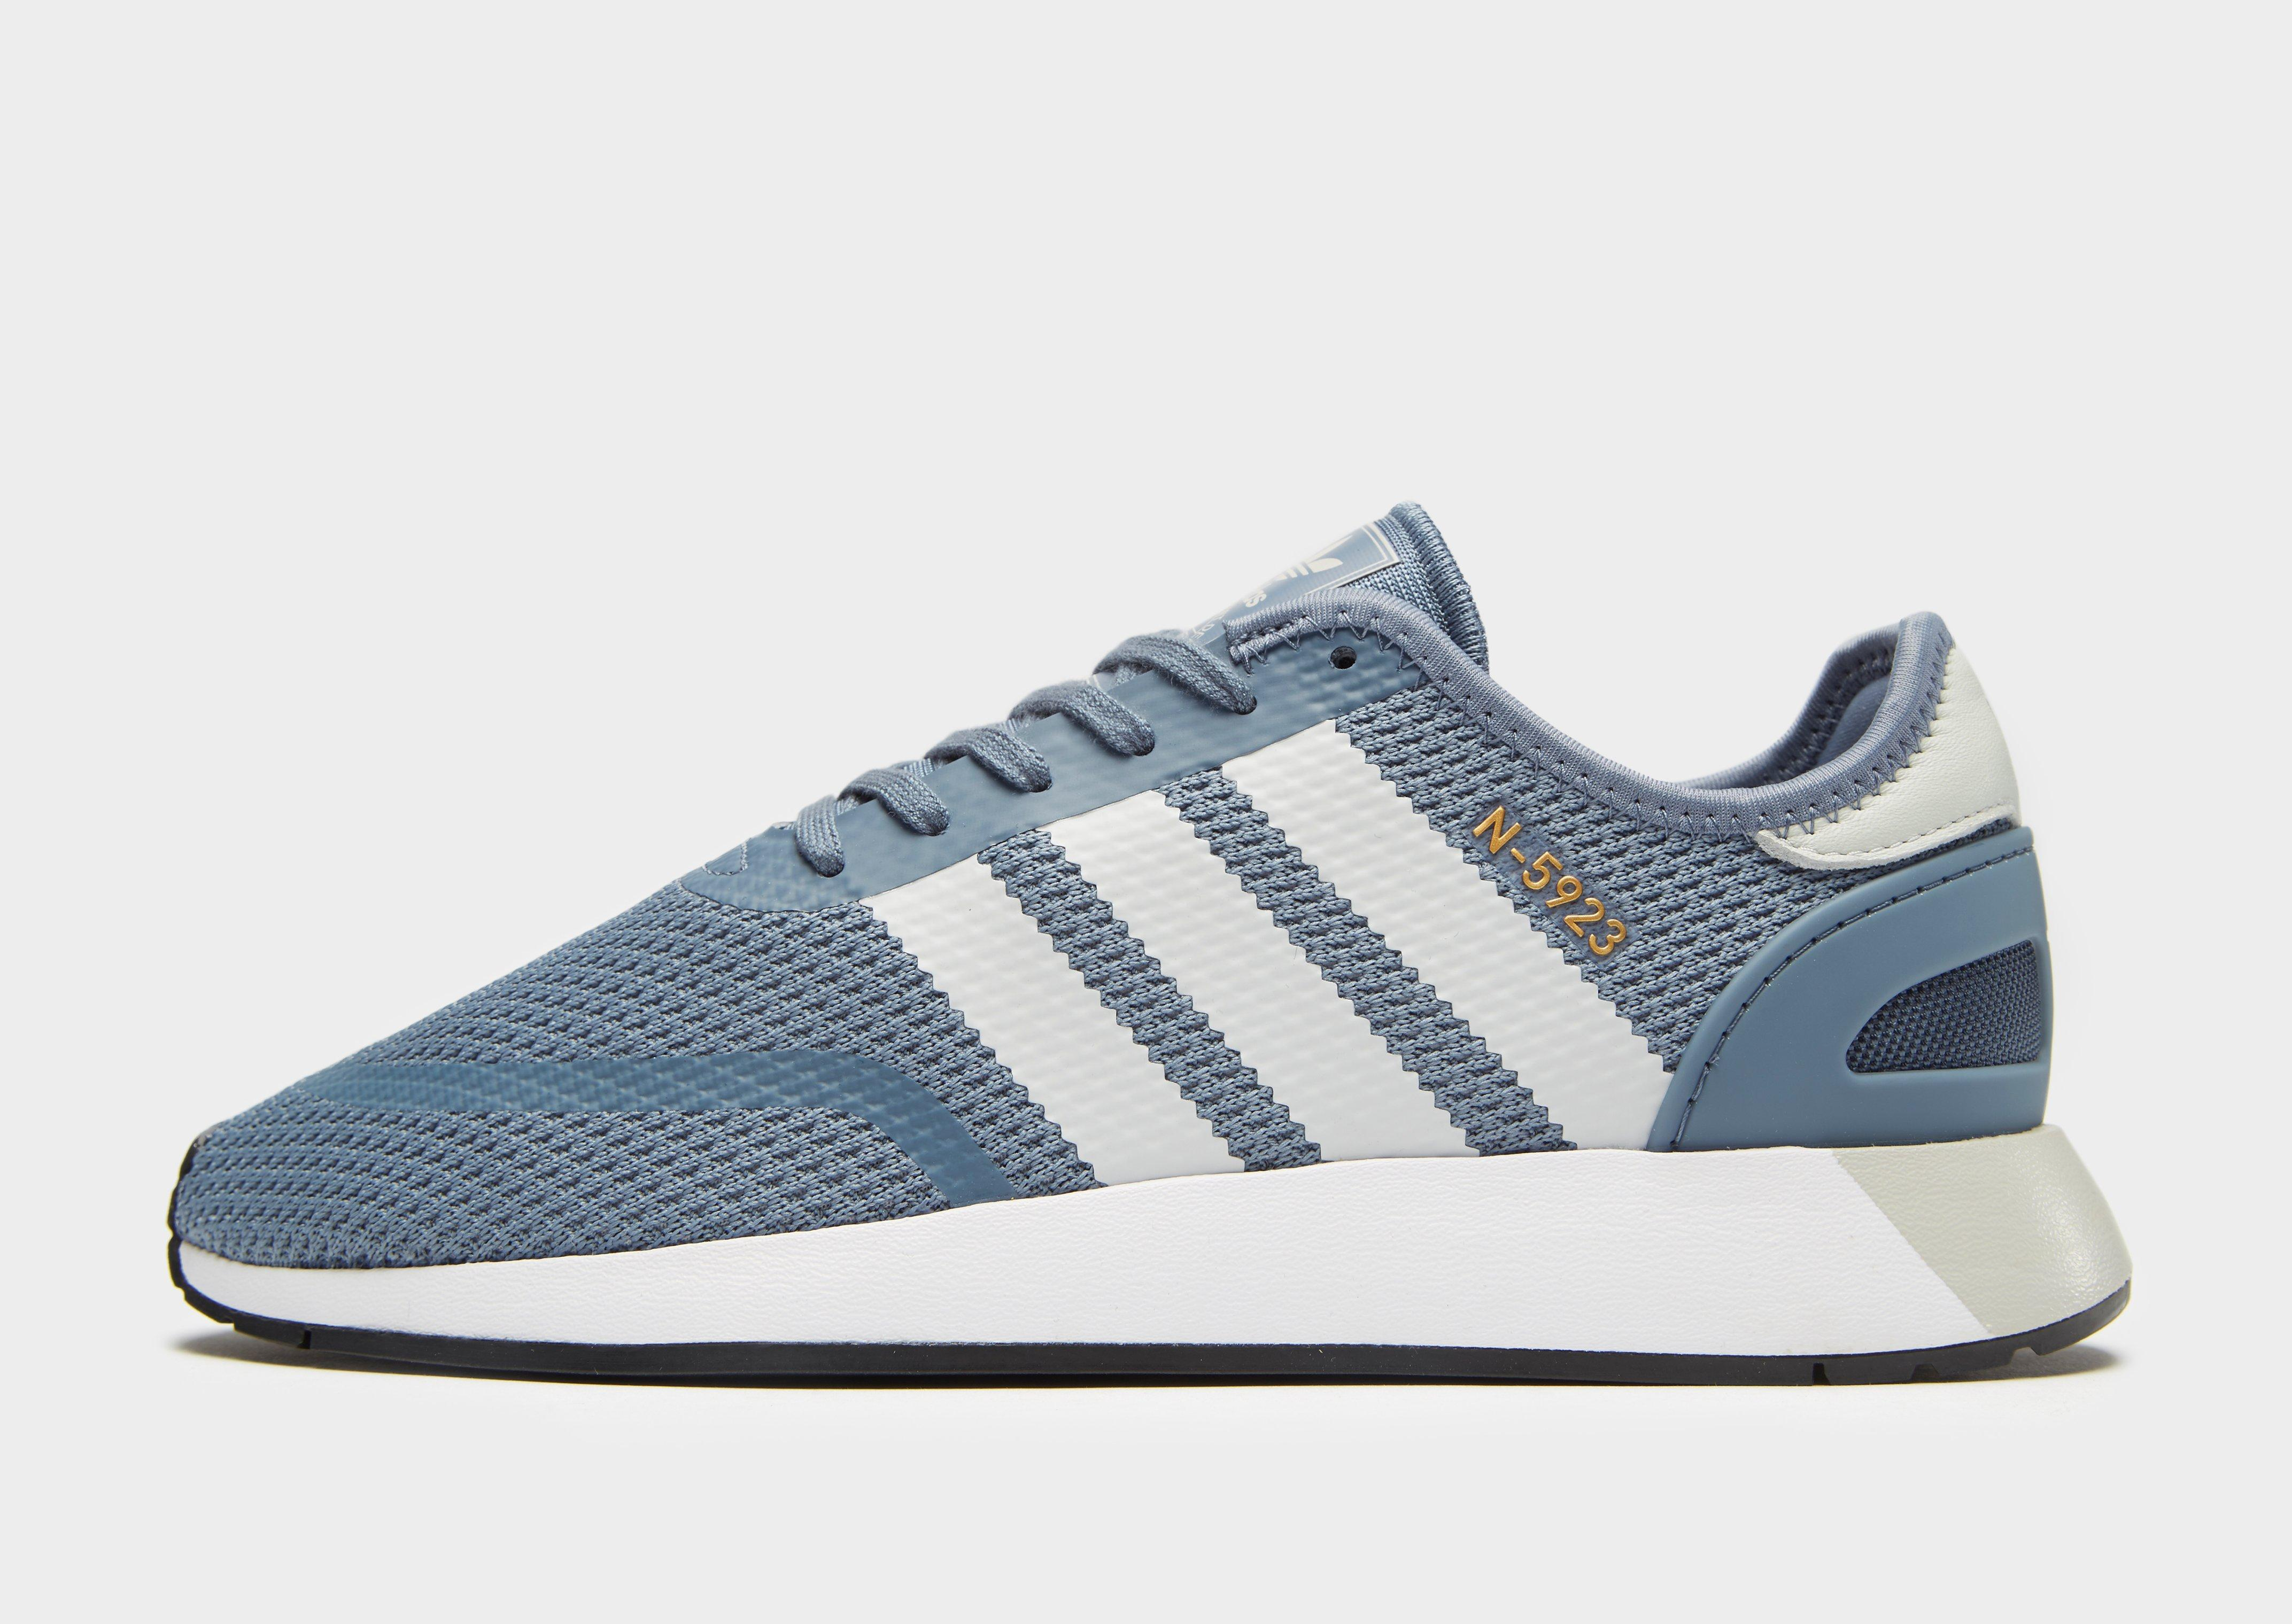 official photos 2bee5 2527e Lyst - adidas Originals N-5923 in Blue for Men